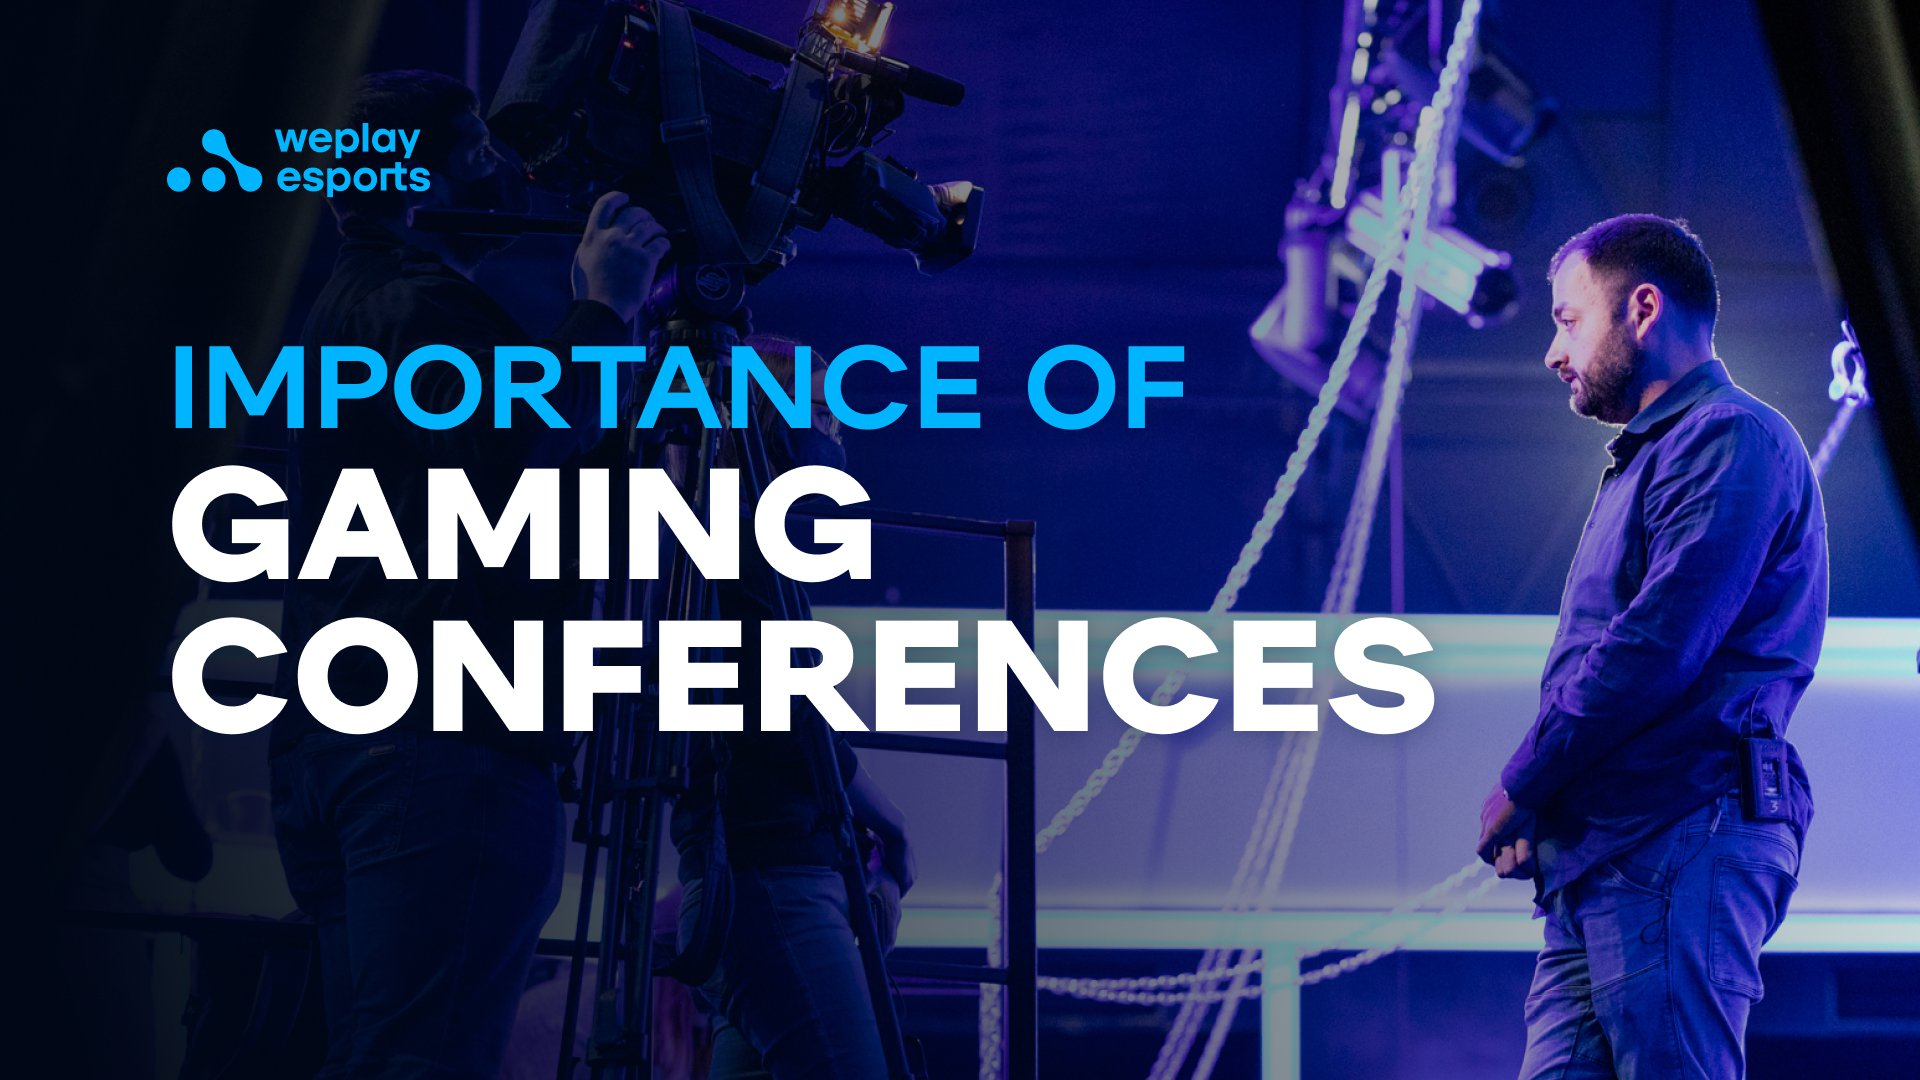 Importance of Gaming Conferences